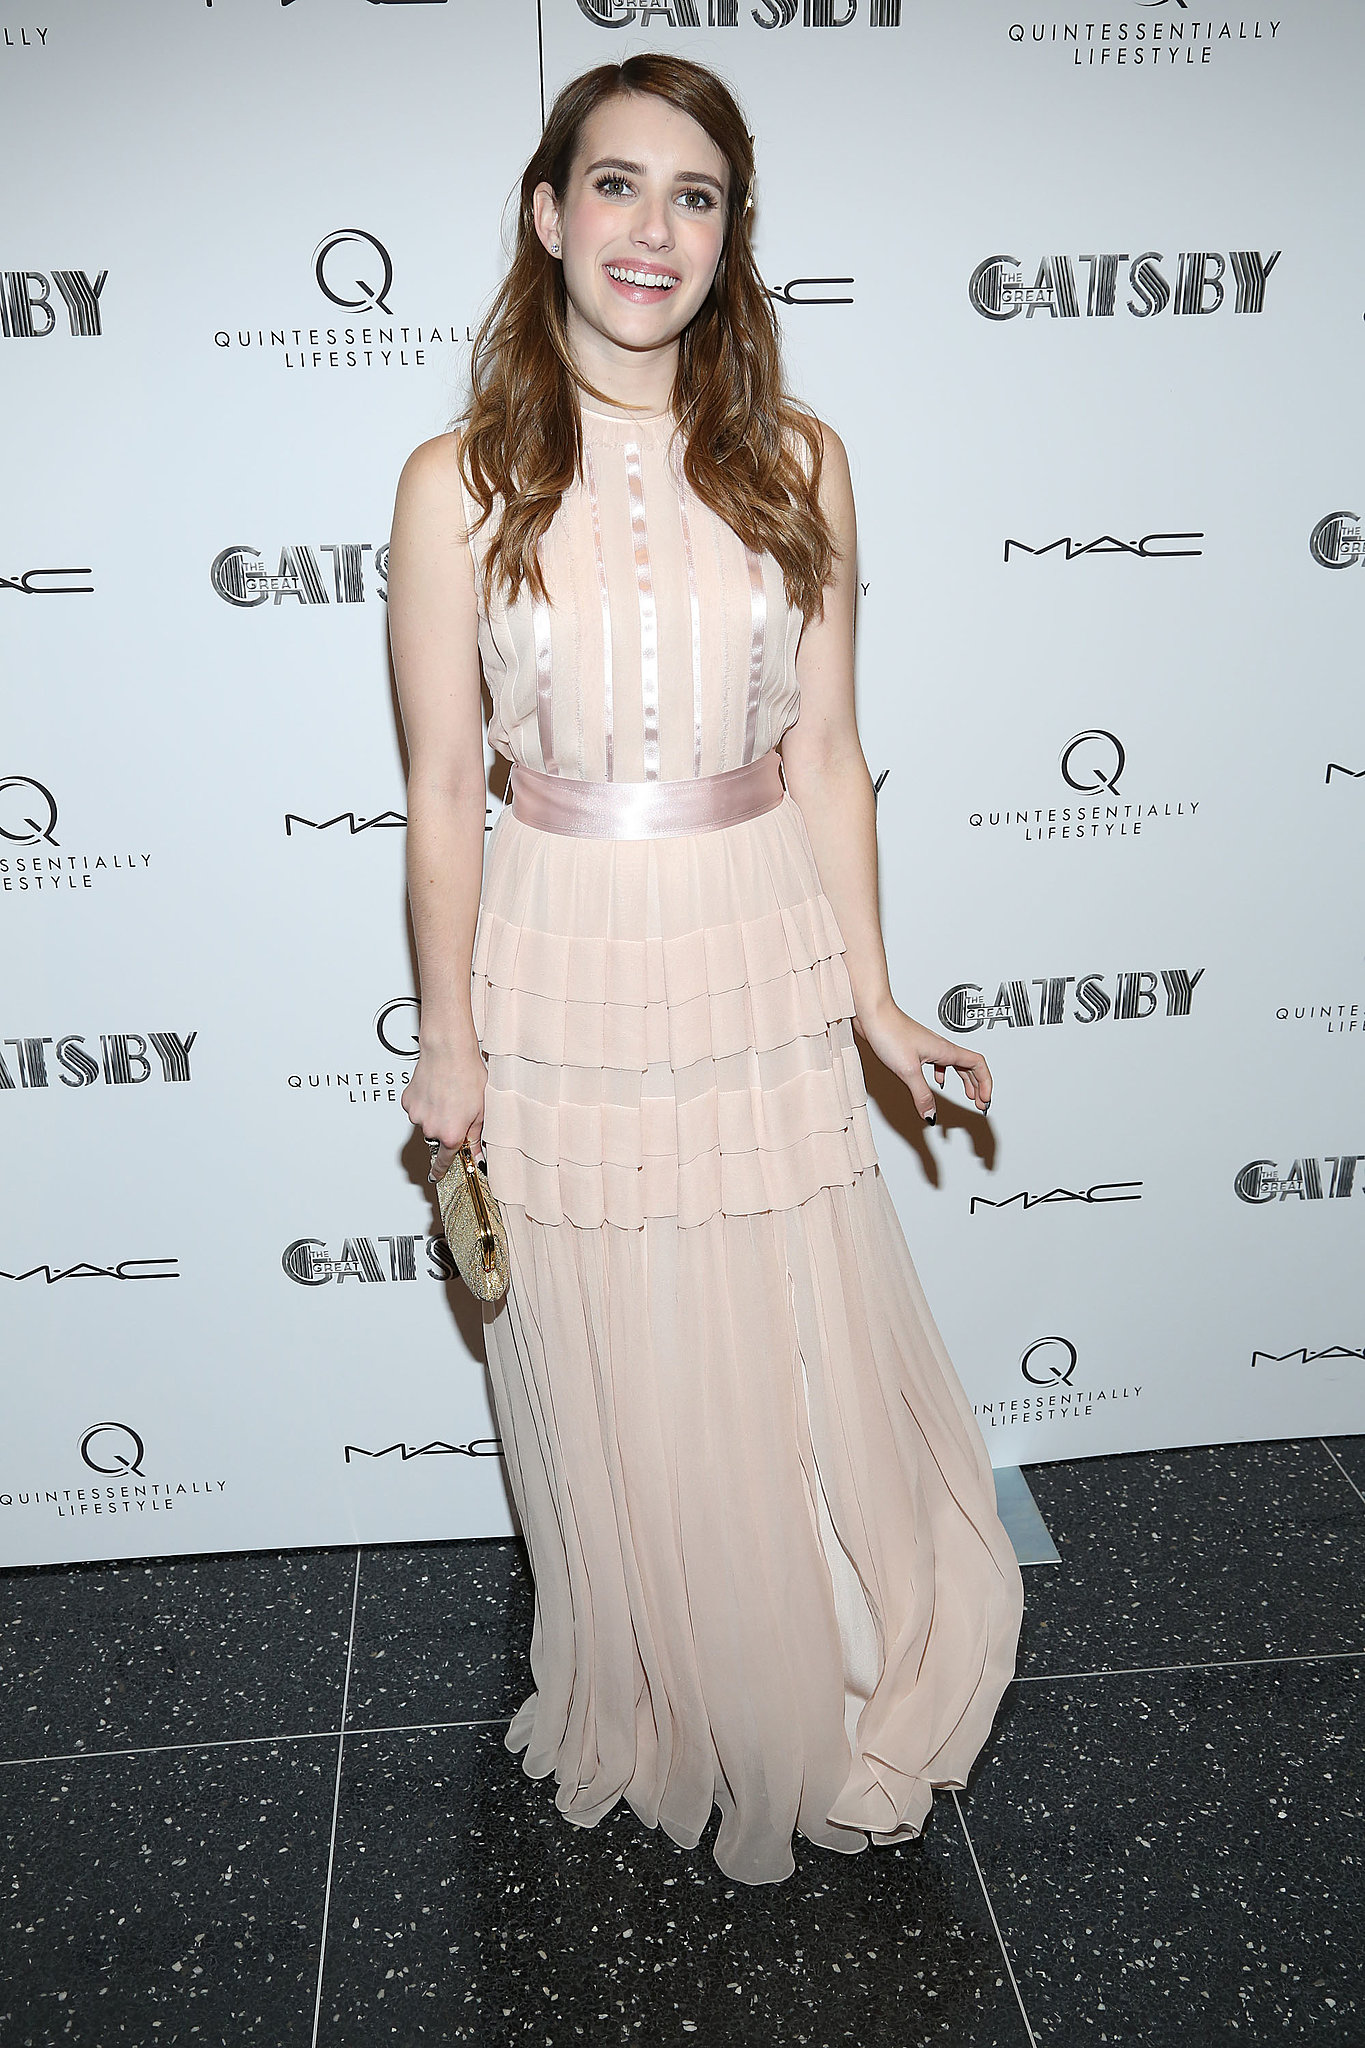 Emma Roberts attended the pre-Met Gala screening of The Great Gatsby in an ultrafemme, petal-pink Jonathan Saunders confection, adorned with a satin ribbon at the waist.